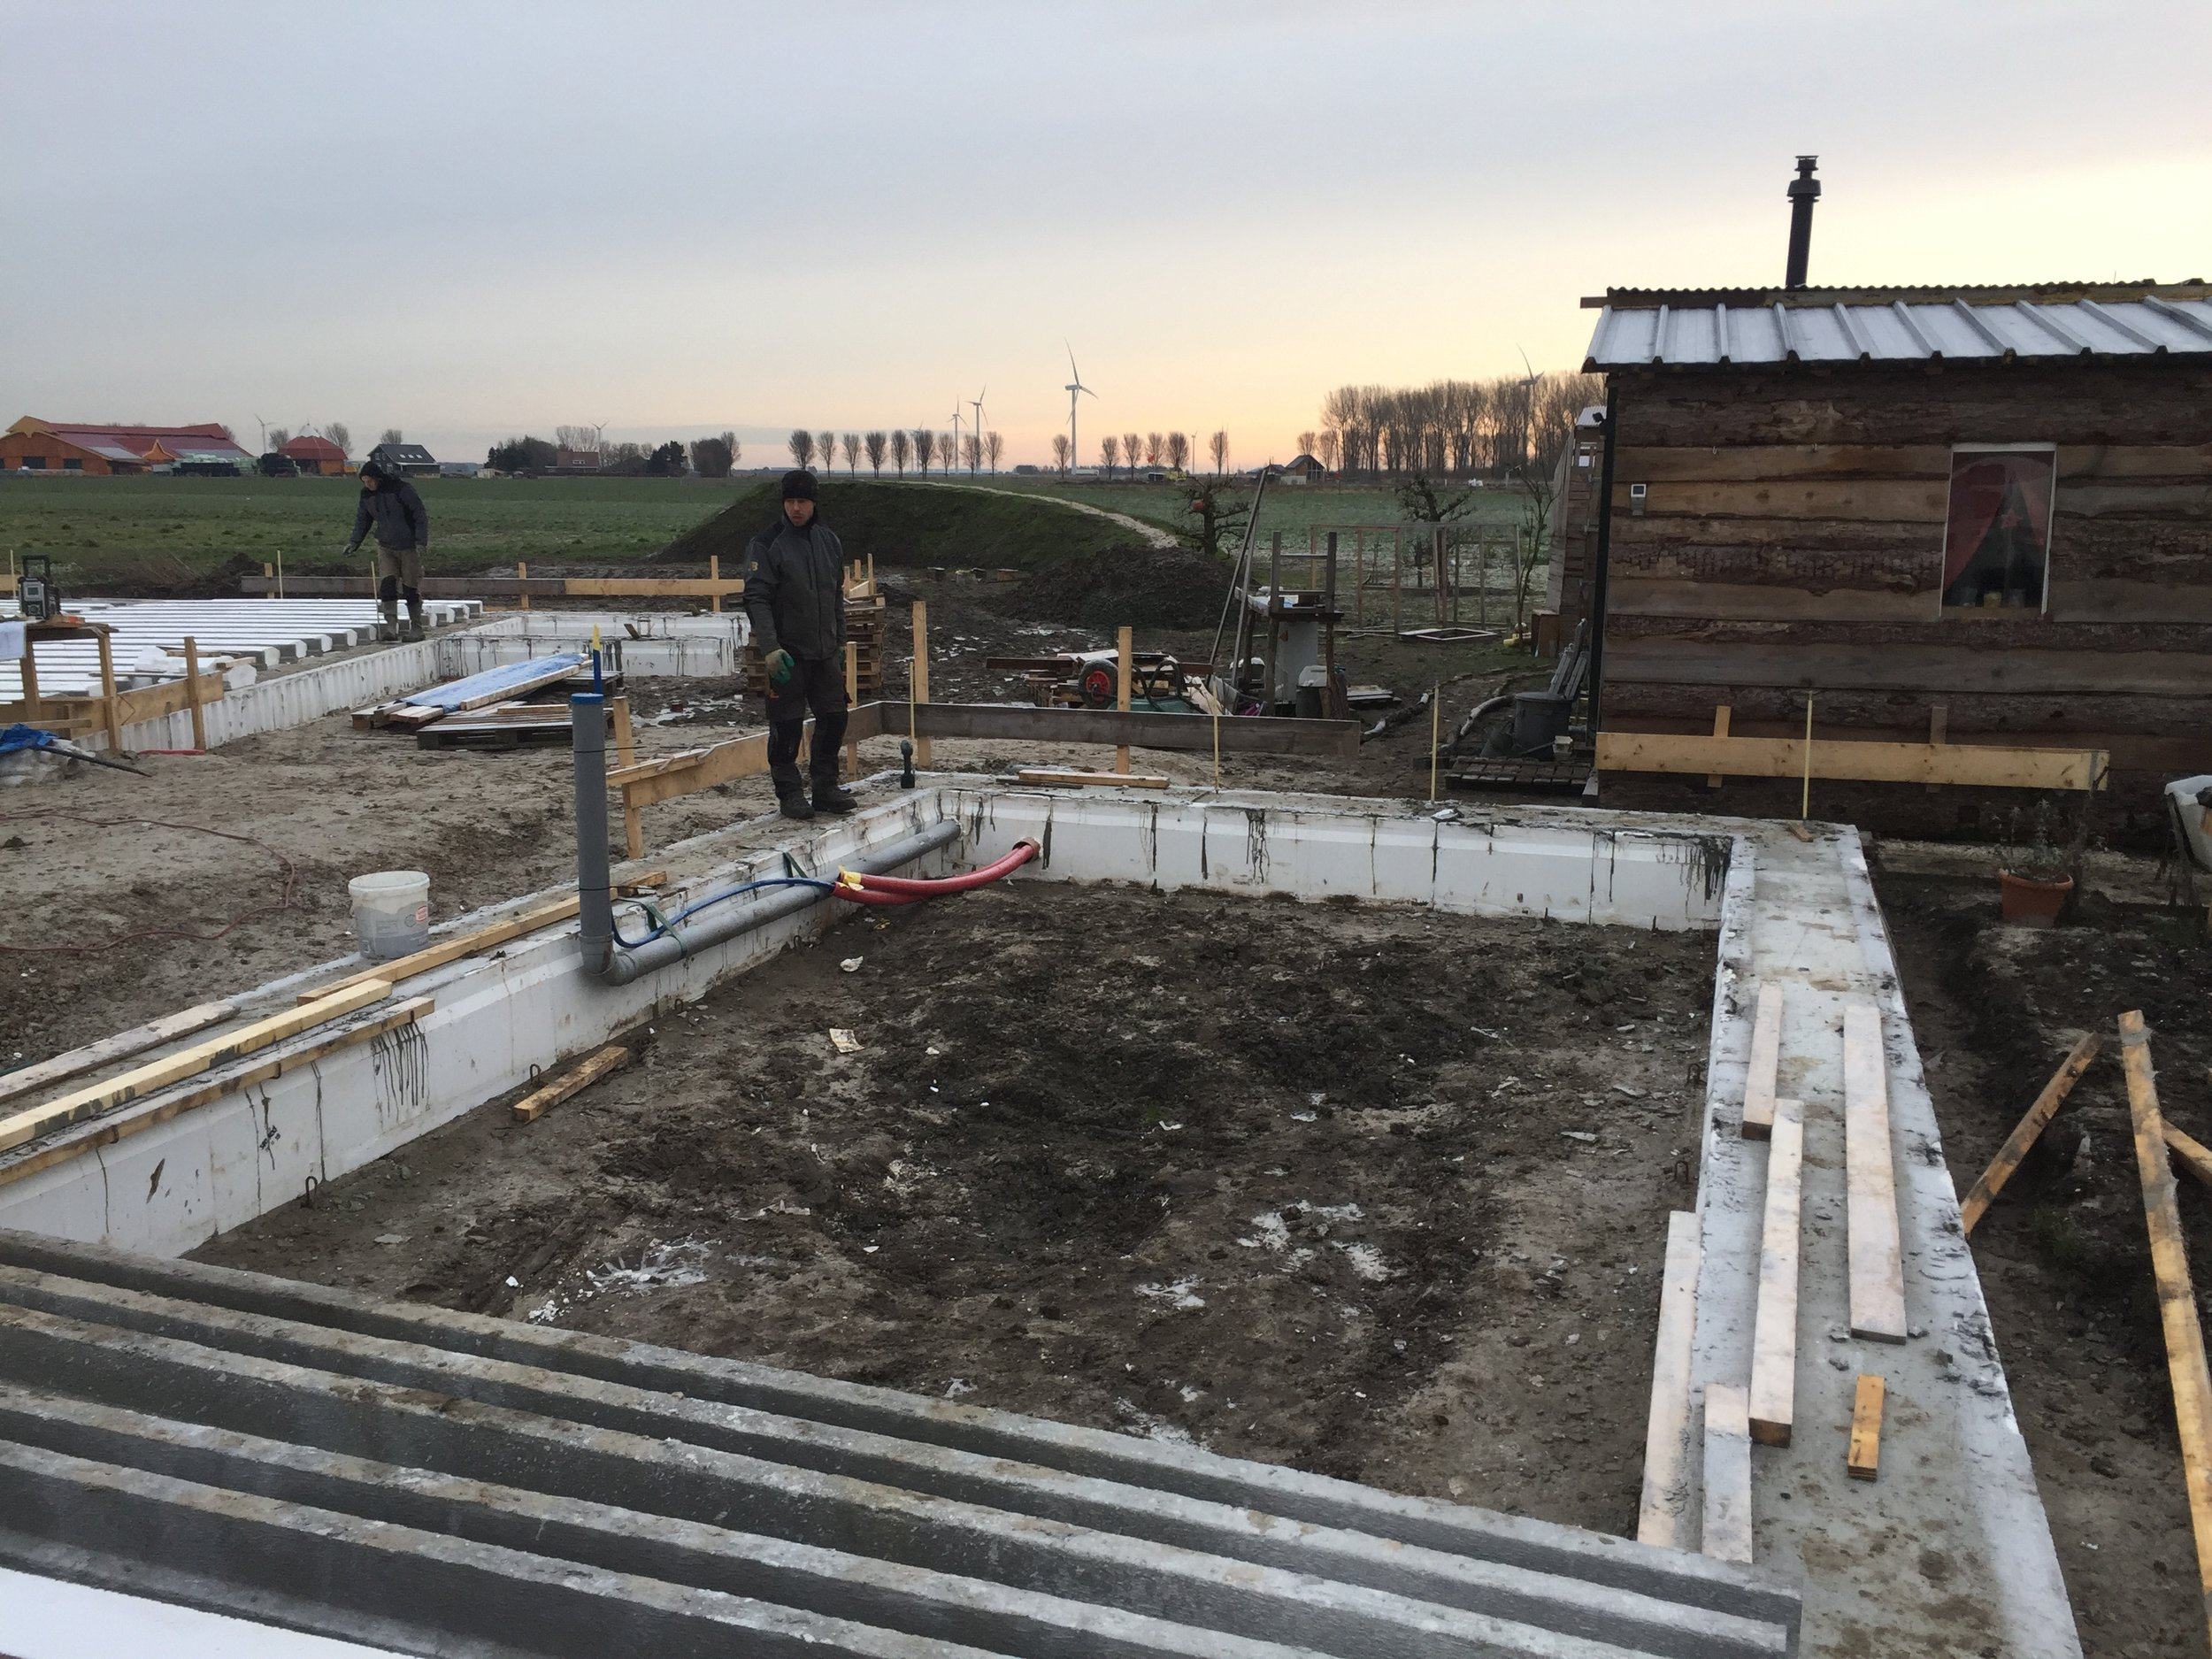 The floor combines prefab joists for tension and a layer poured in situ for pressure.